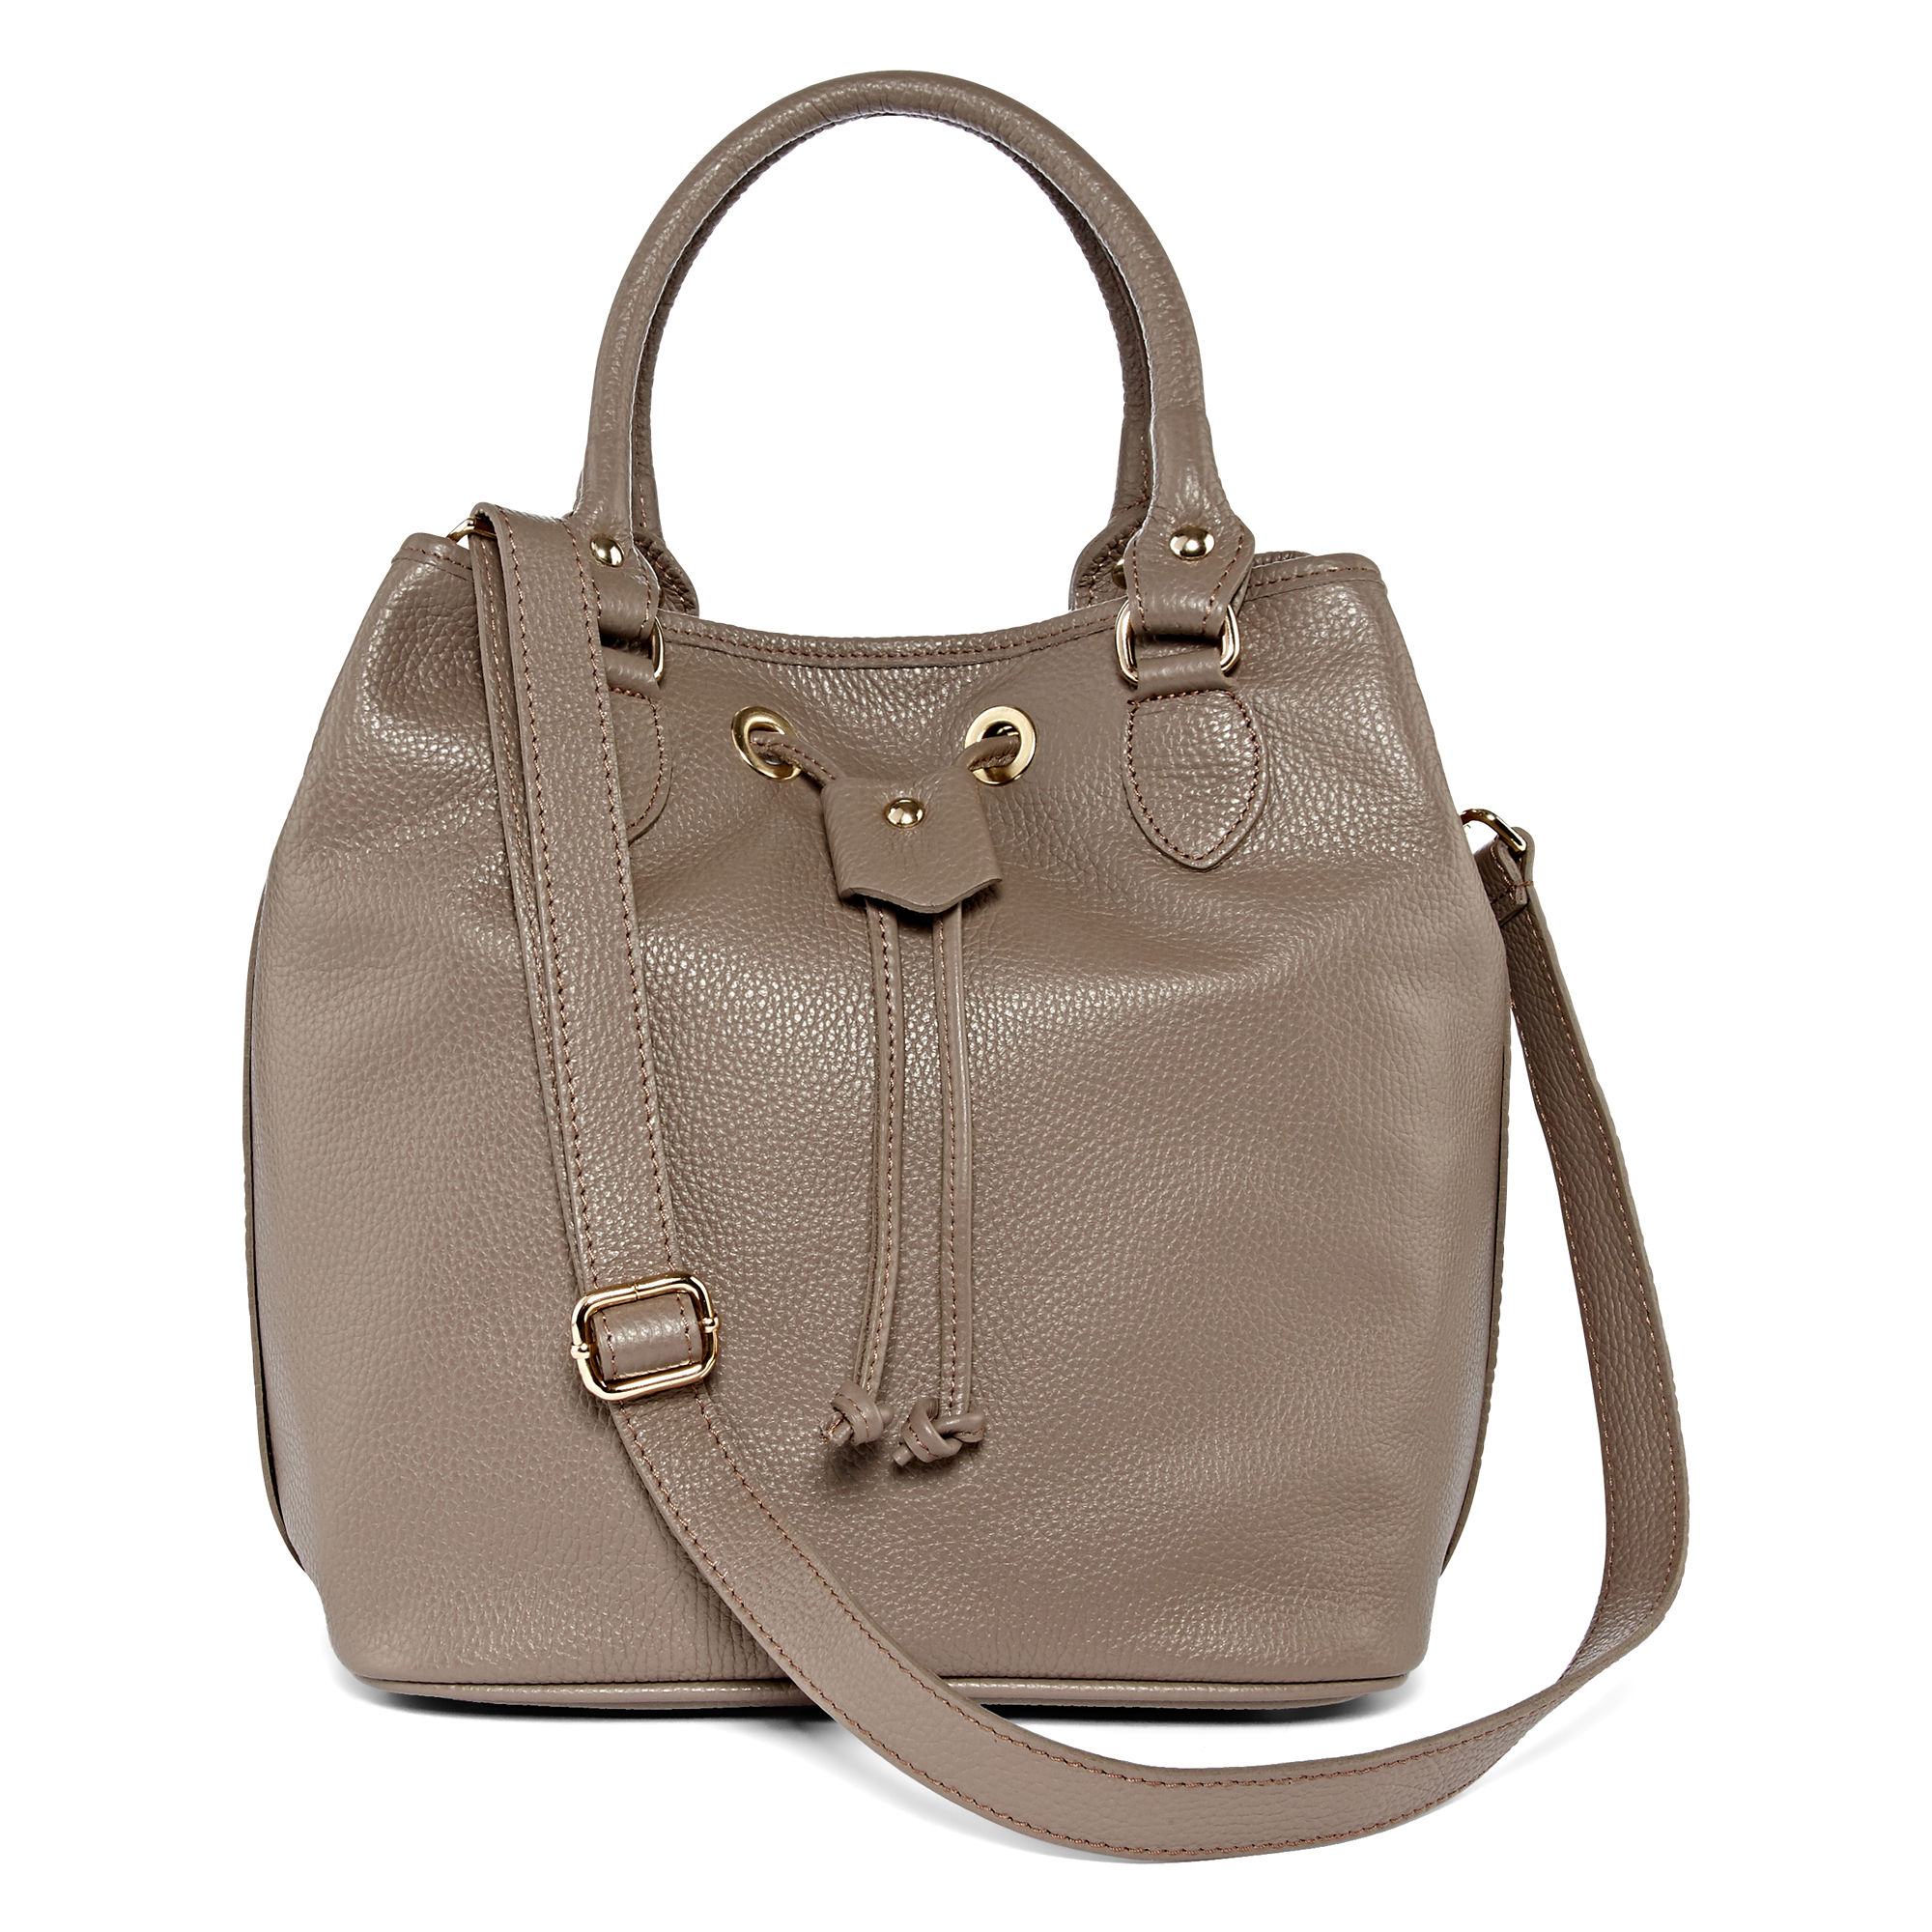 Liz Claiborne Angelina Leather Drawstring Bucket Bag